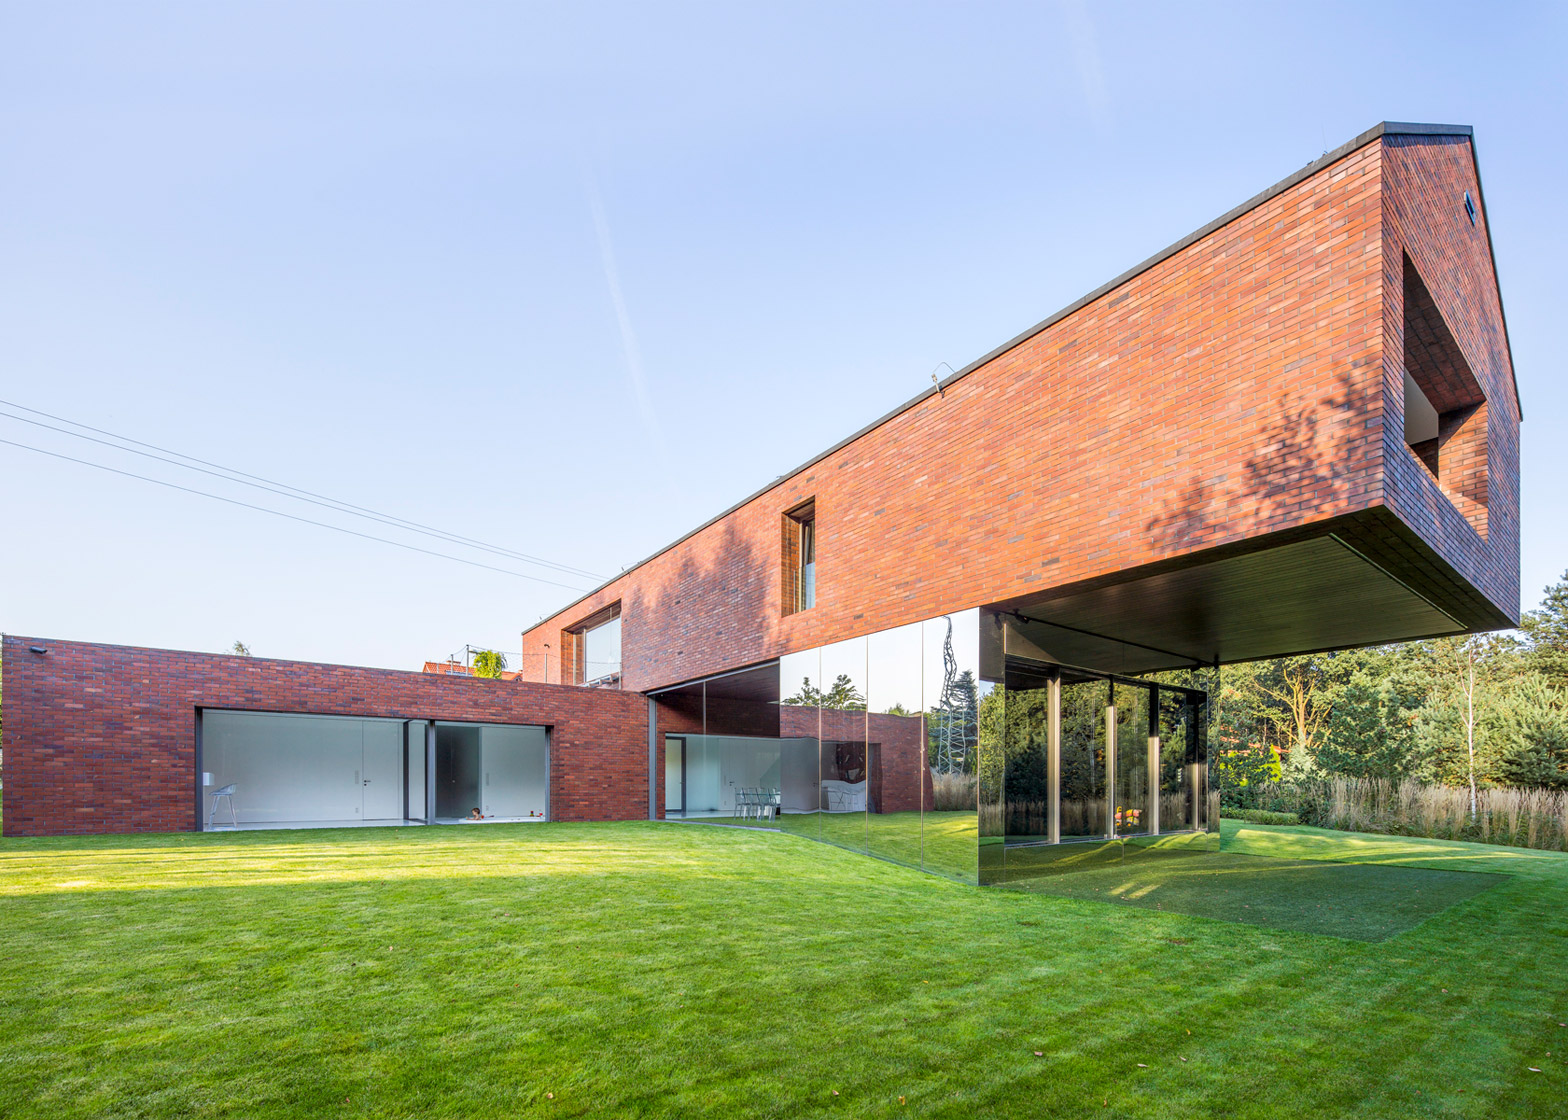 Living-Garden House in Izbica, Izbica, Poland, by Robert Konieczny and KWK Promes